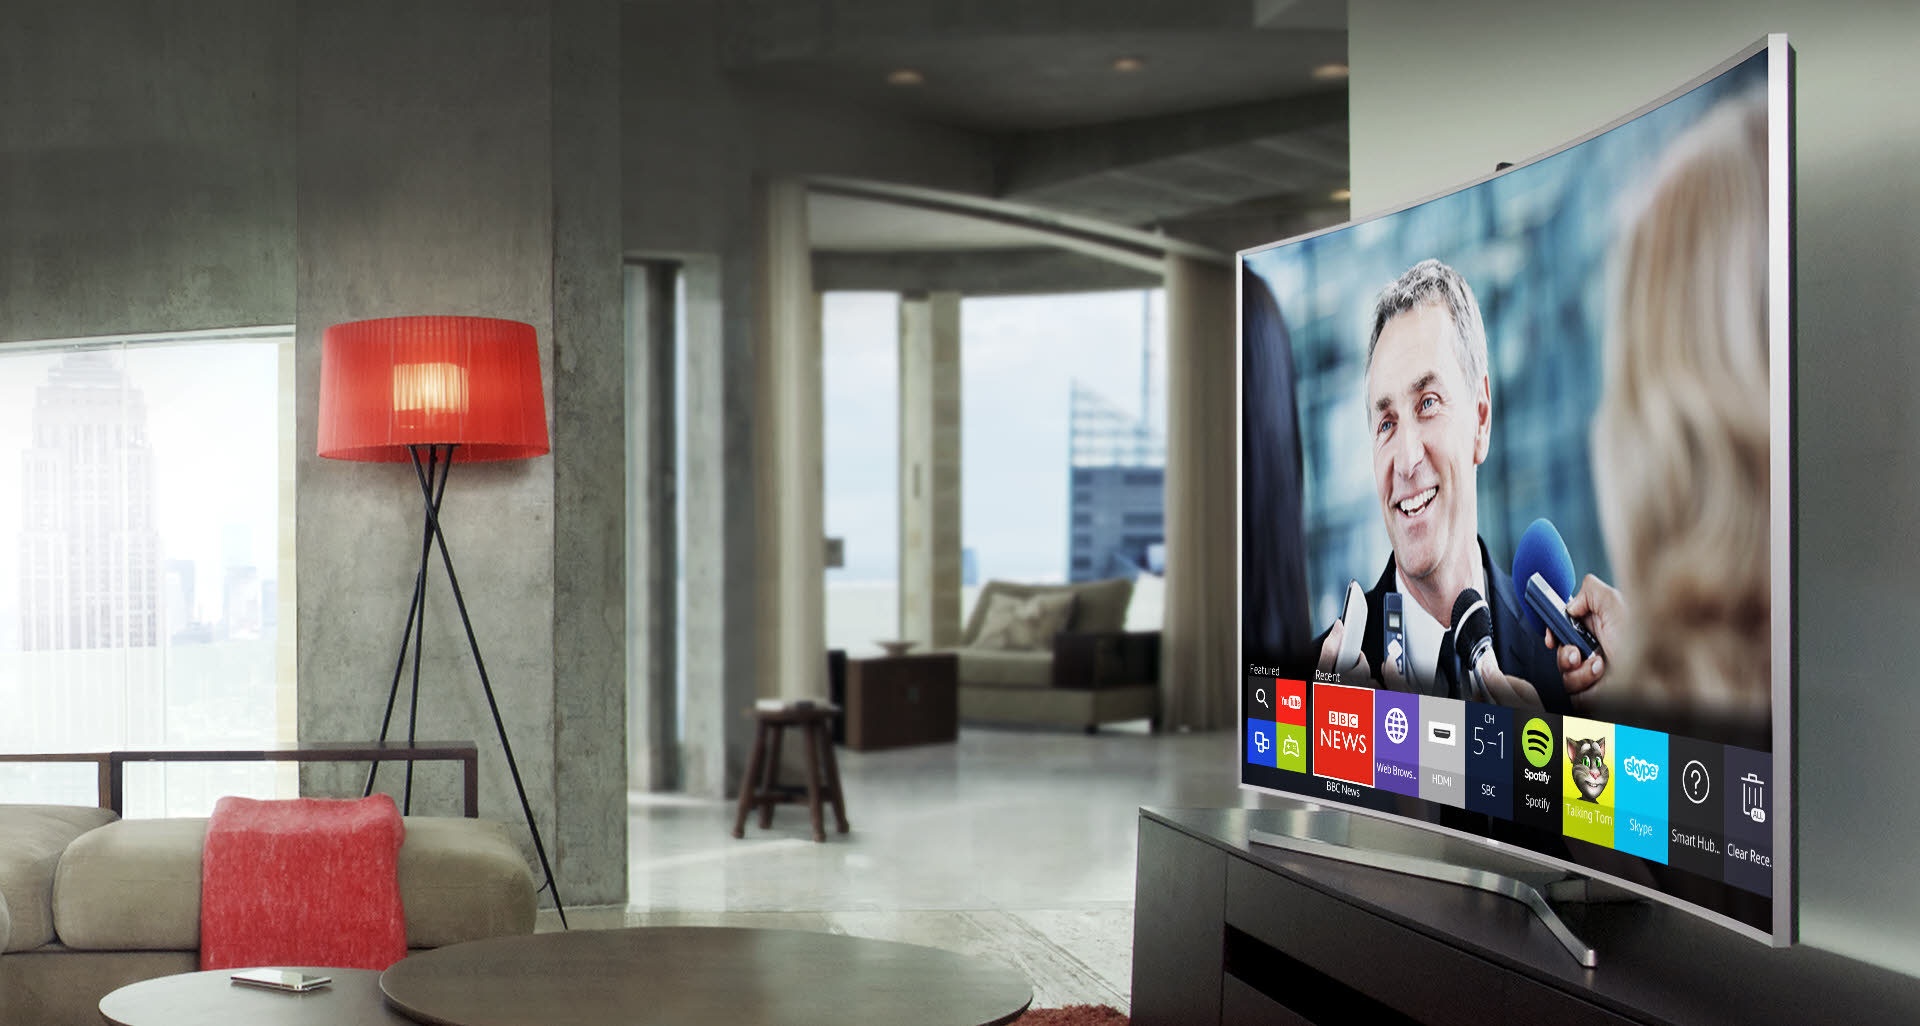 Samsung-smart-tv-end-security-intimacy-chase-monitor